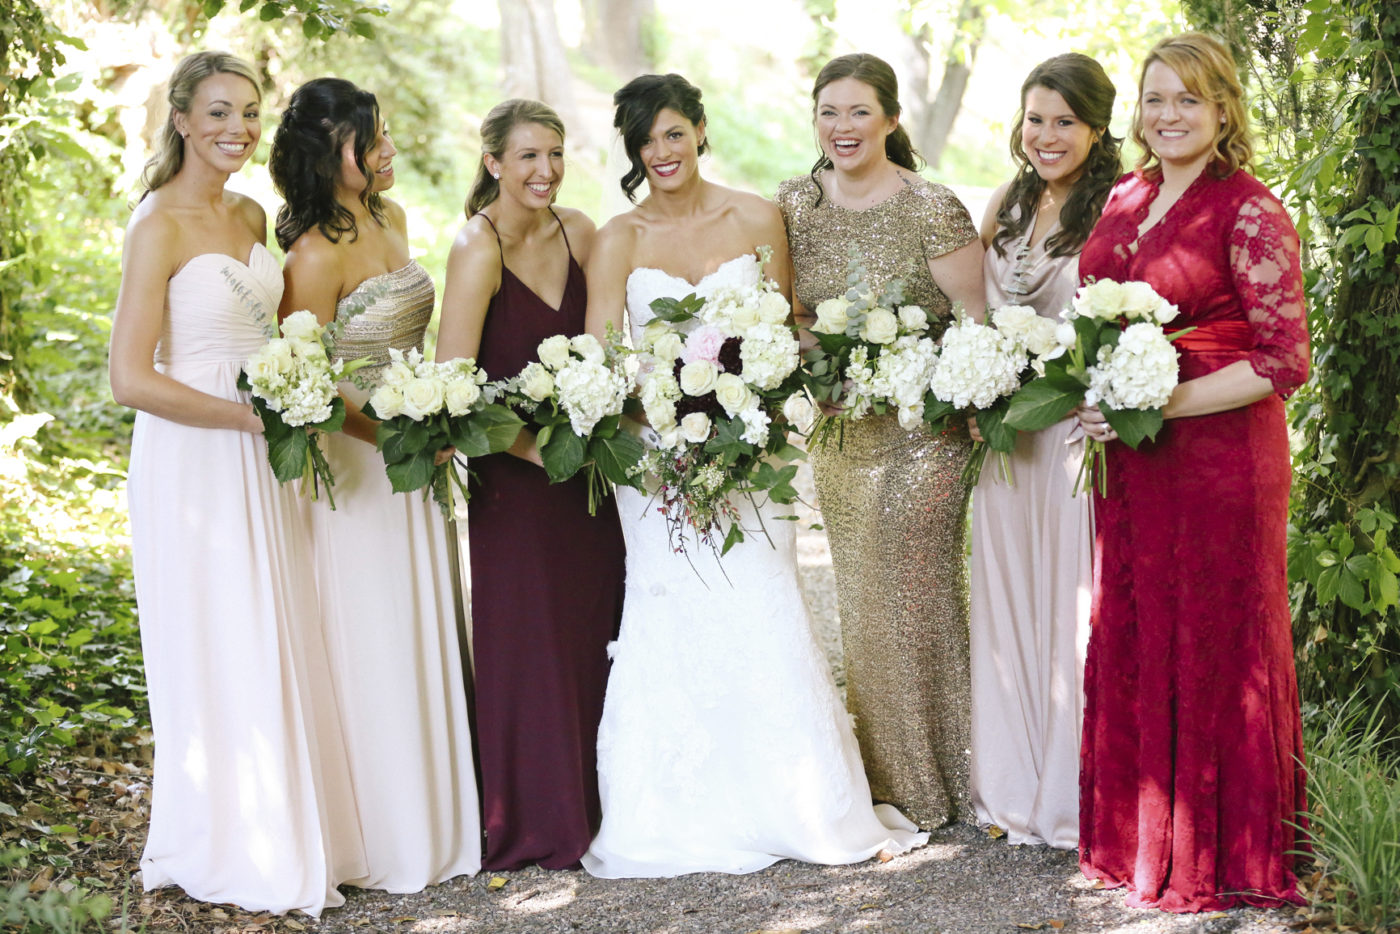 Here come the mismatched bridesmaids news sports jobs the here come the mismatched bridesmaids news sports jobs the intelligencer ombrellifo Gallery